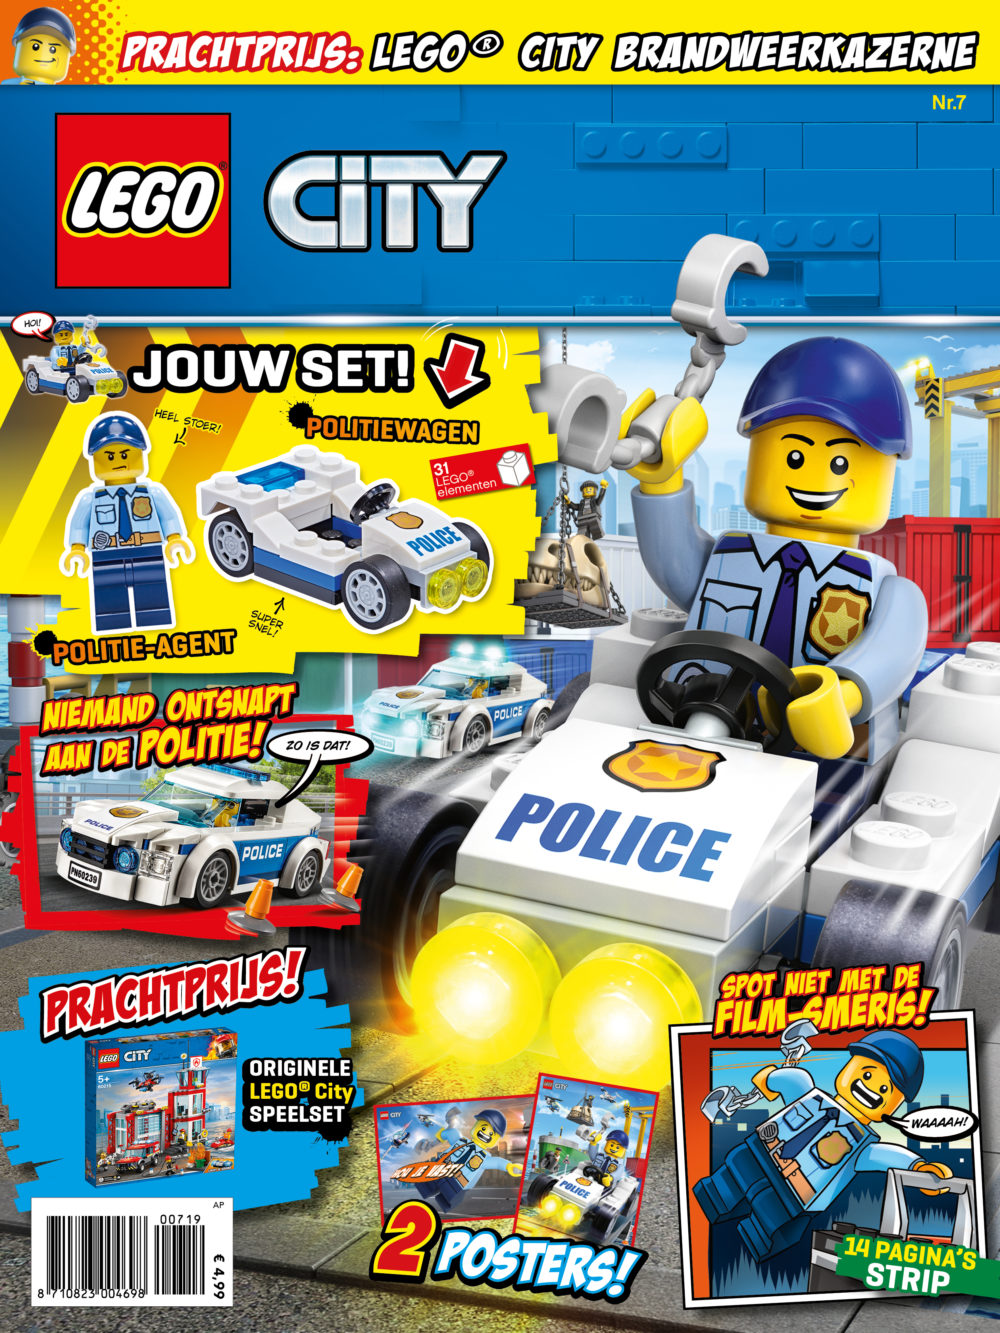 LEGO City magazine